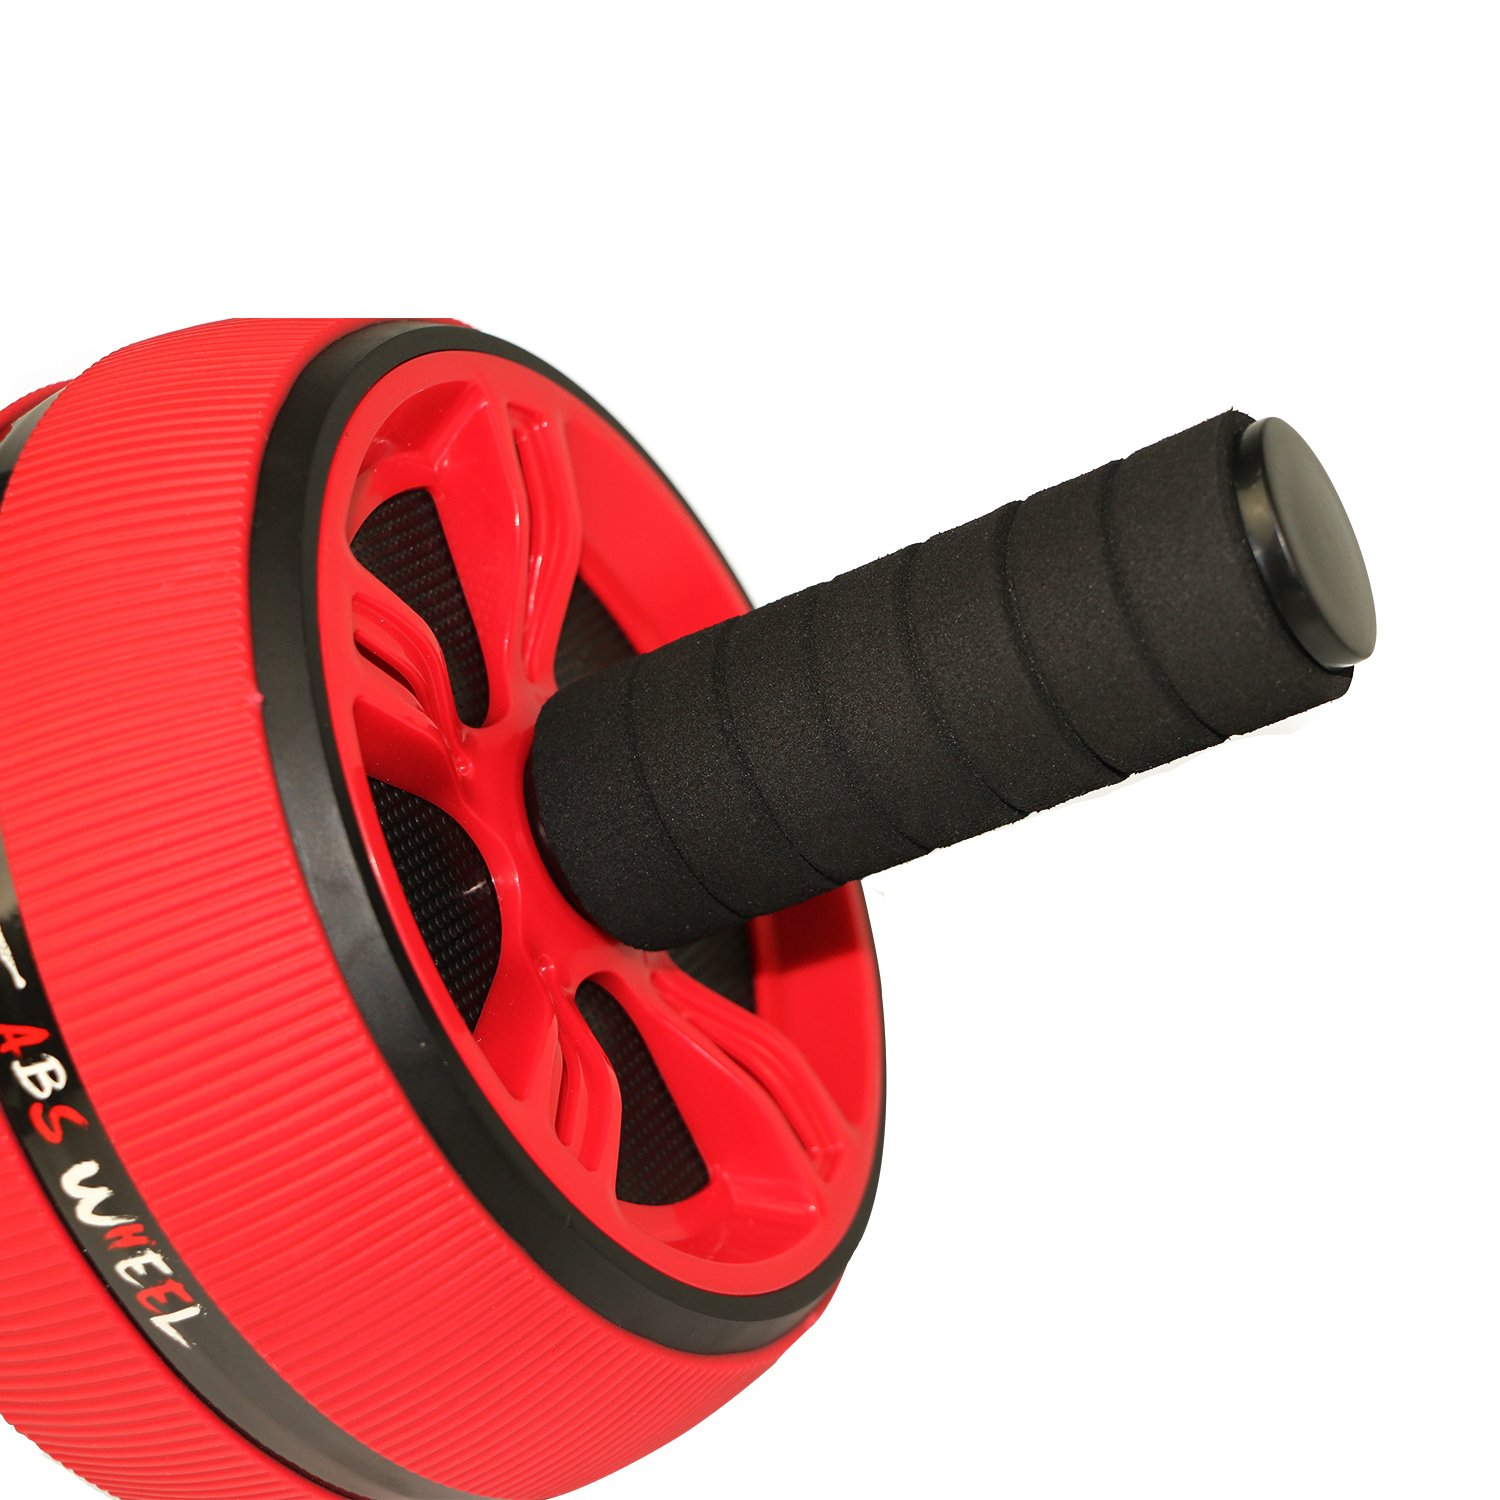 Muscles Trainier for Muscles Training Workout at Home or Gym Colors: Red Strength Improving Comfort Foam Handles Risefit Ab Roller Abdominal Exercise Wheel with Knee Pad